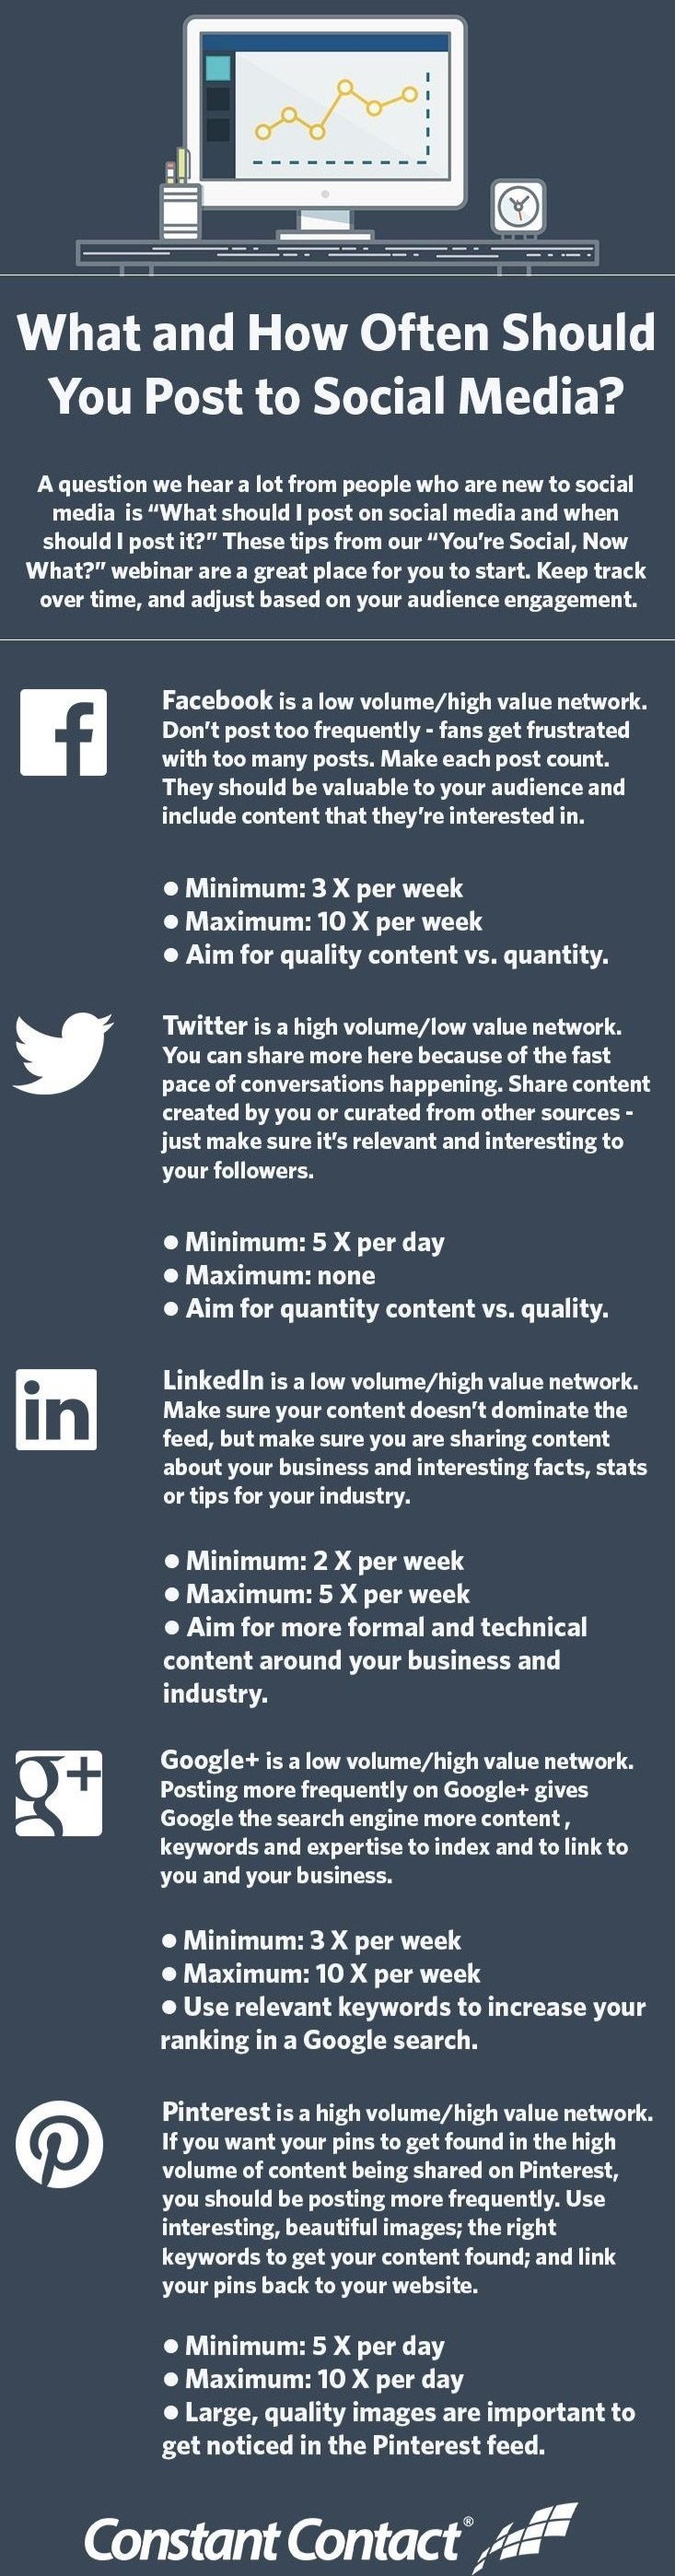 What and how often should you post on Social Media ? #Infographic